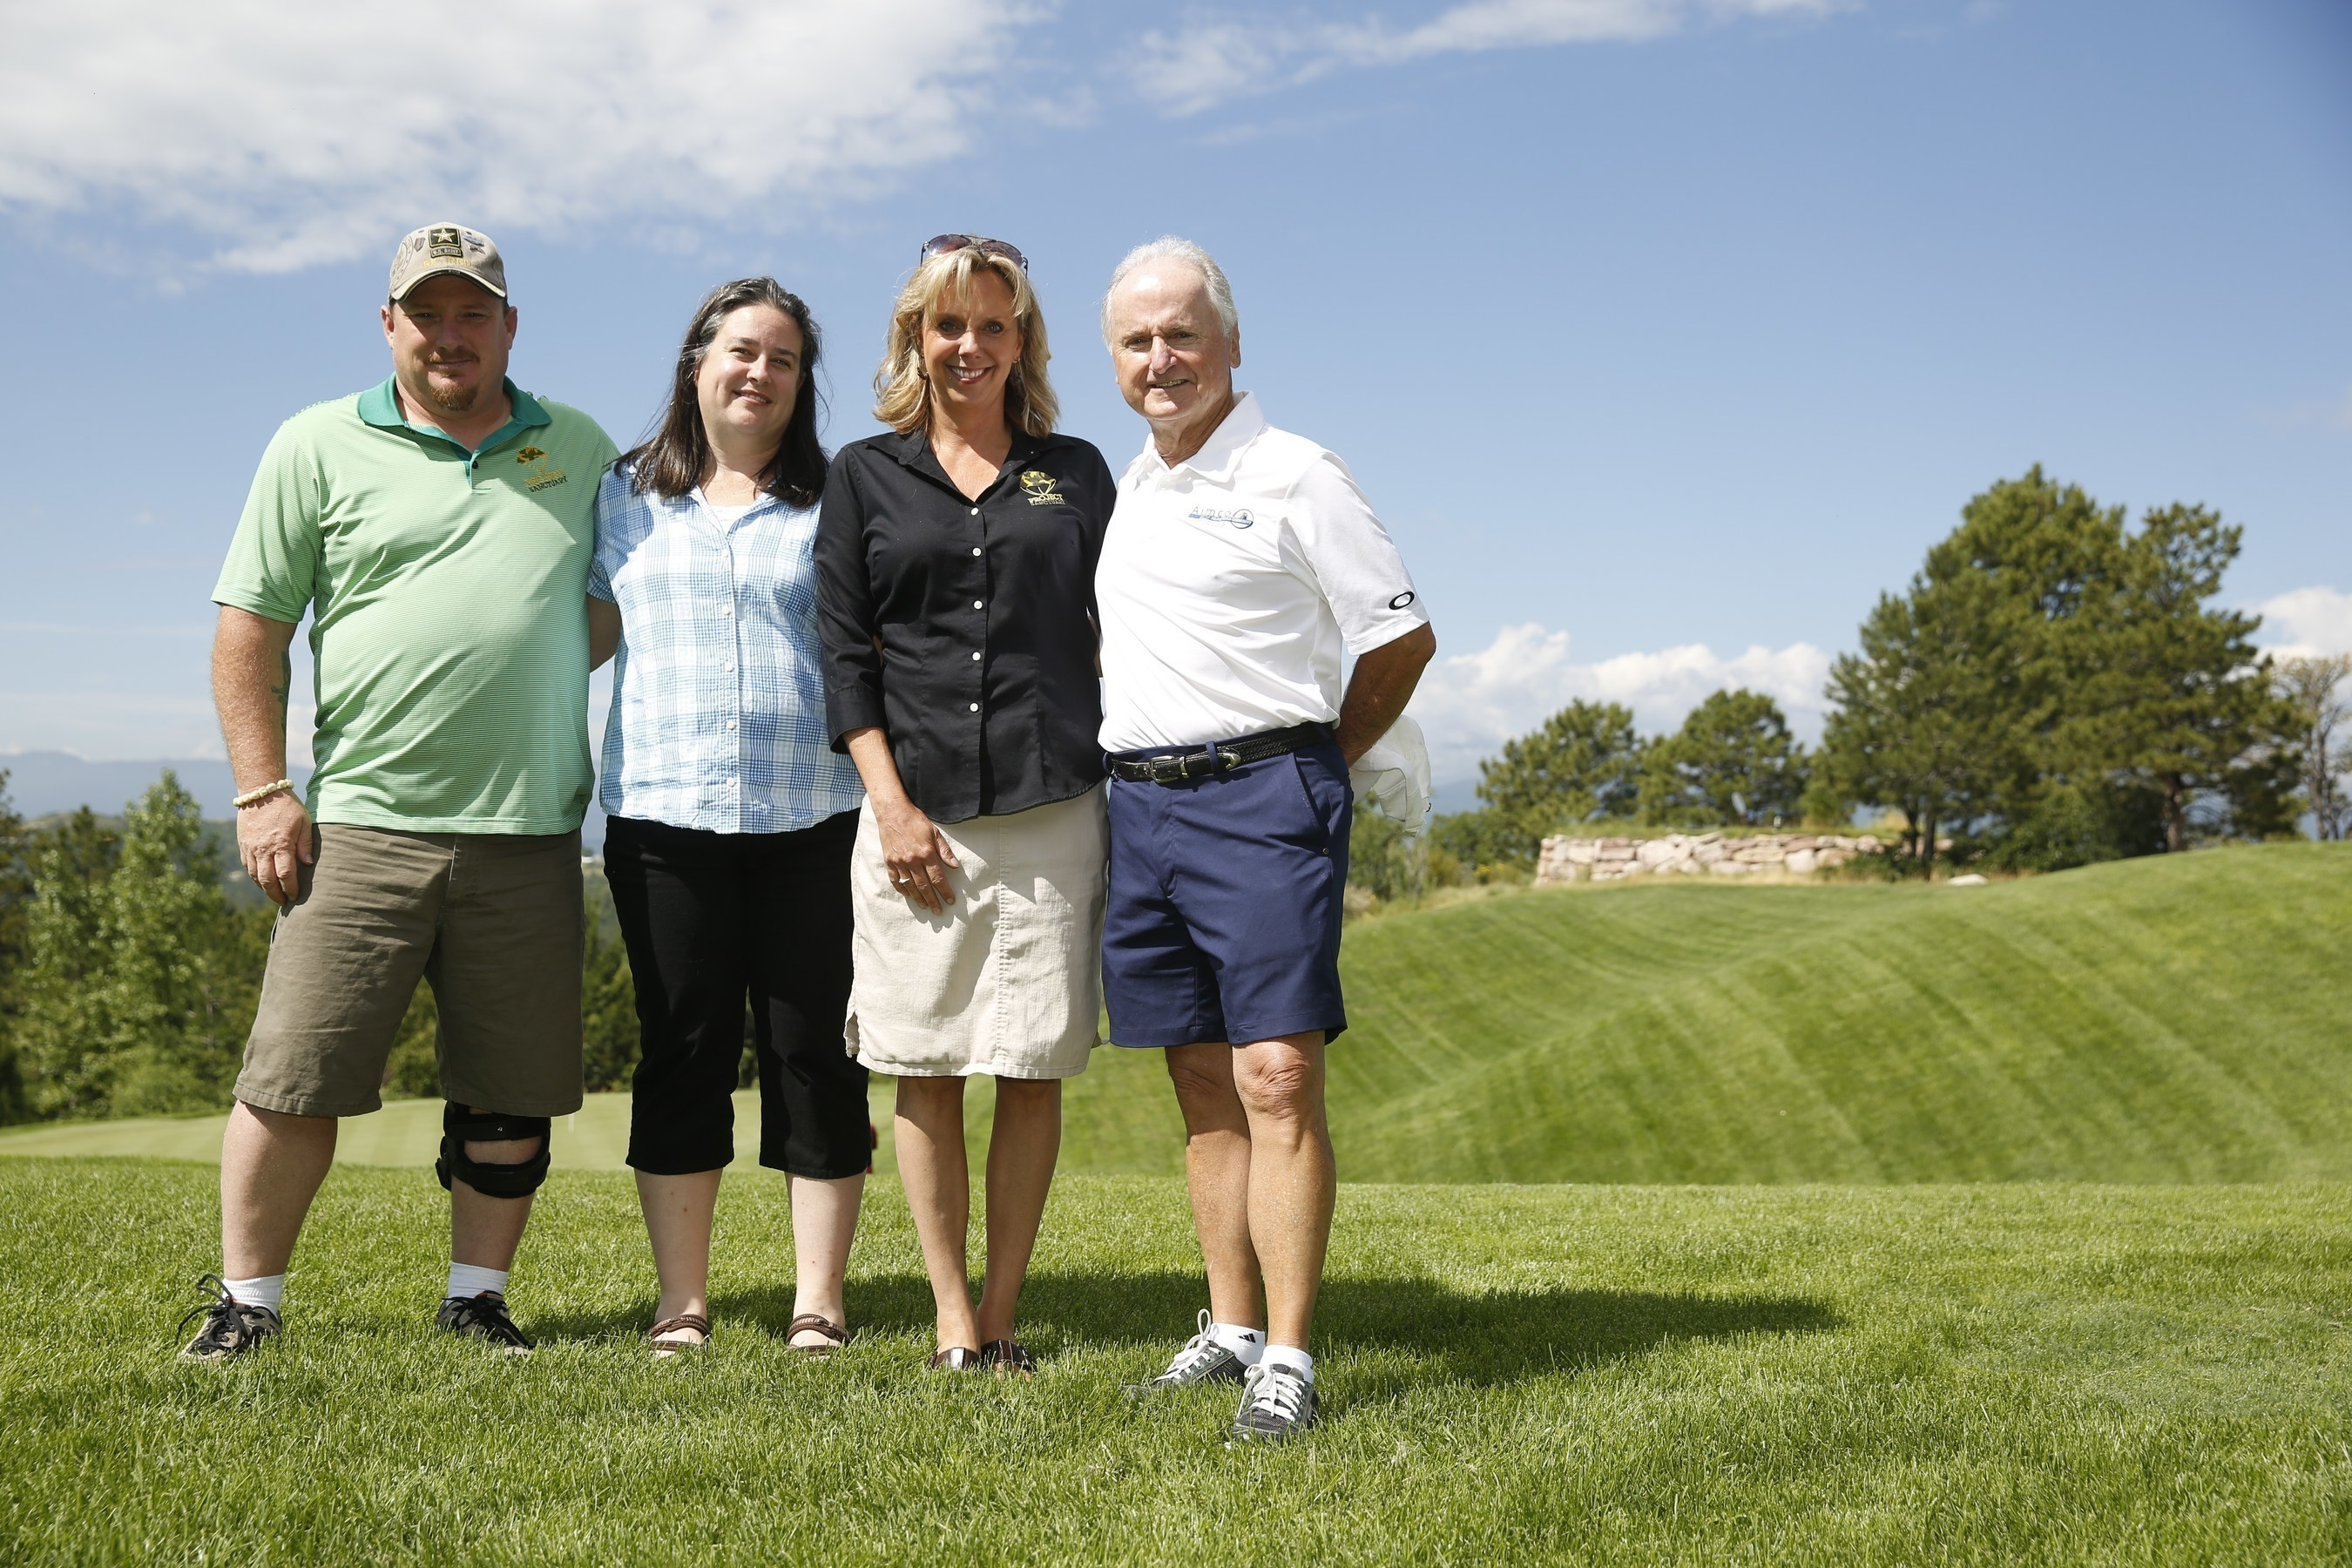 Aimco's Annual Golf Event Raises $515,000 for Military Families and Scholarships